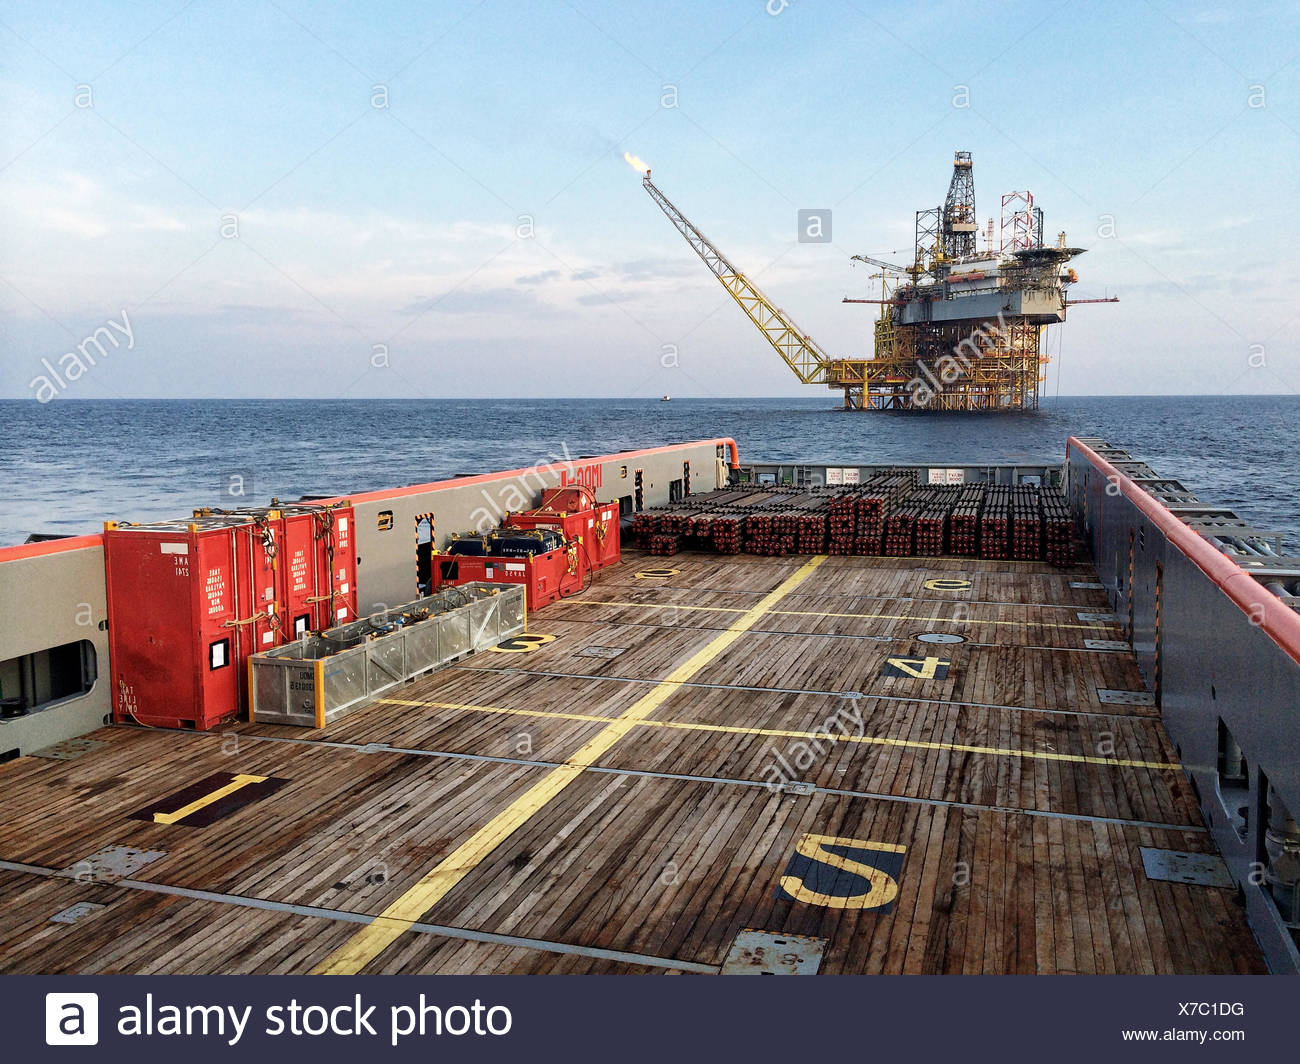 Cargo transportation to oil and gas platform by offshore vessel - Stock Image